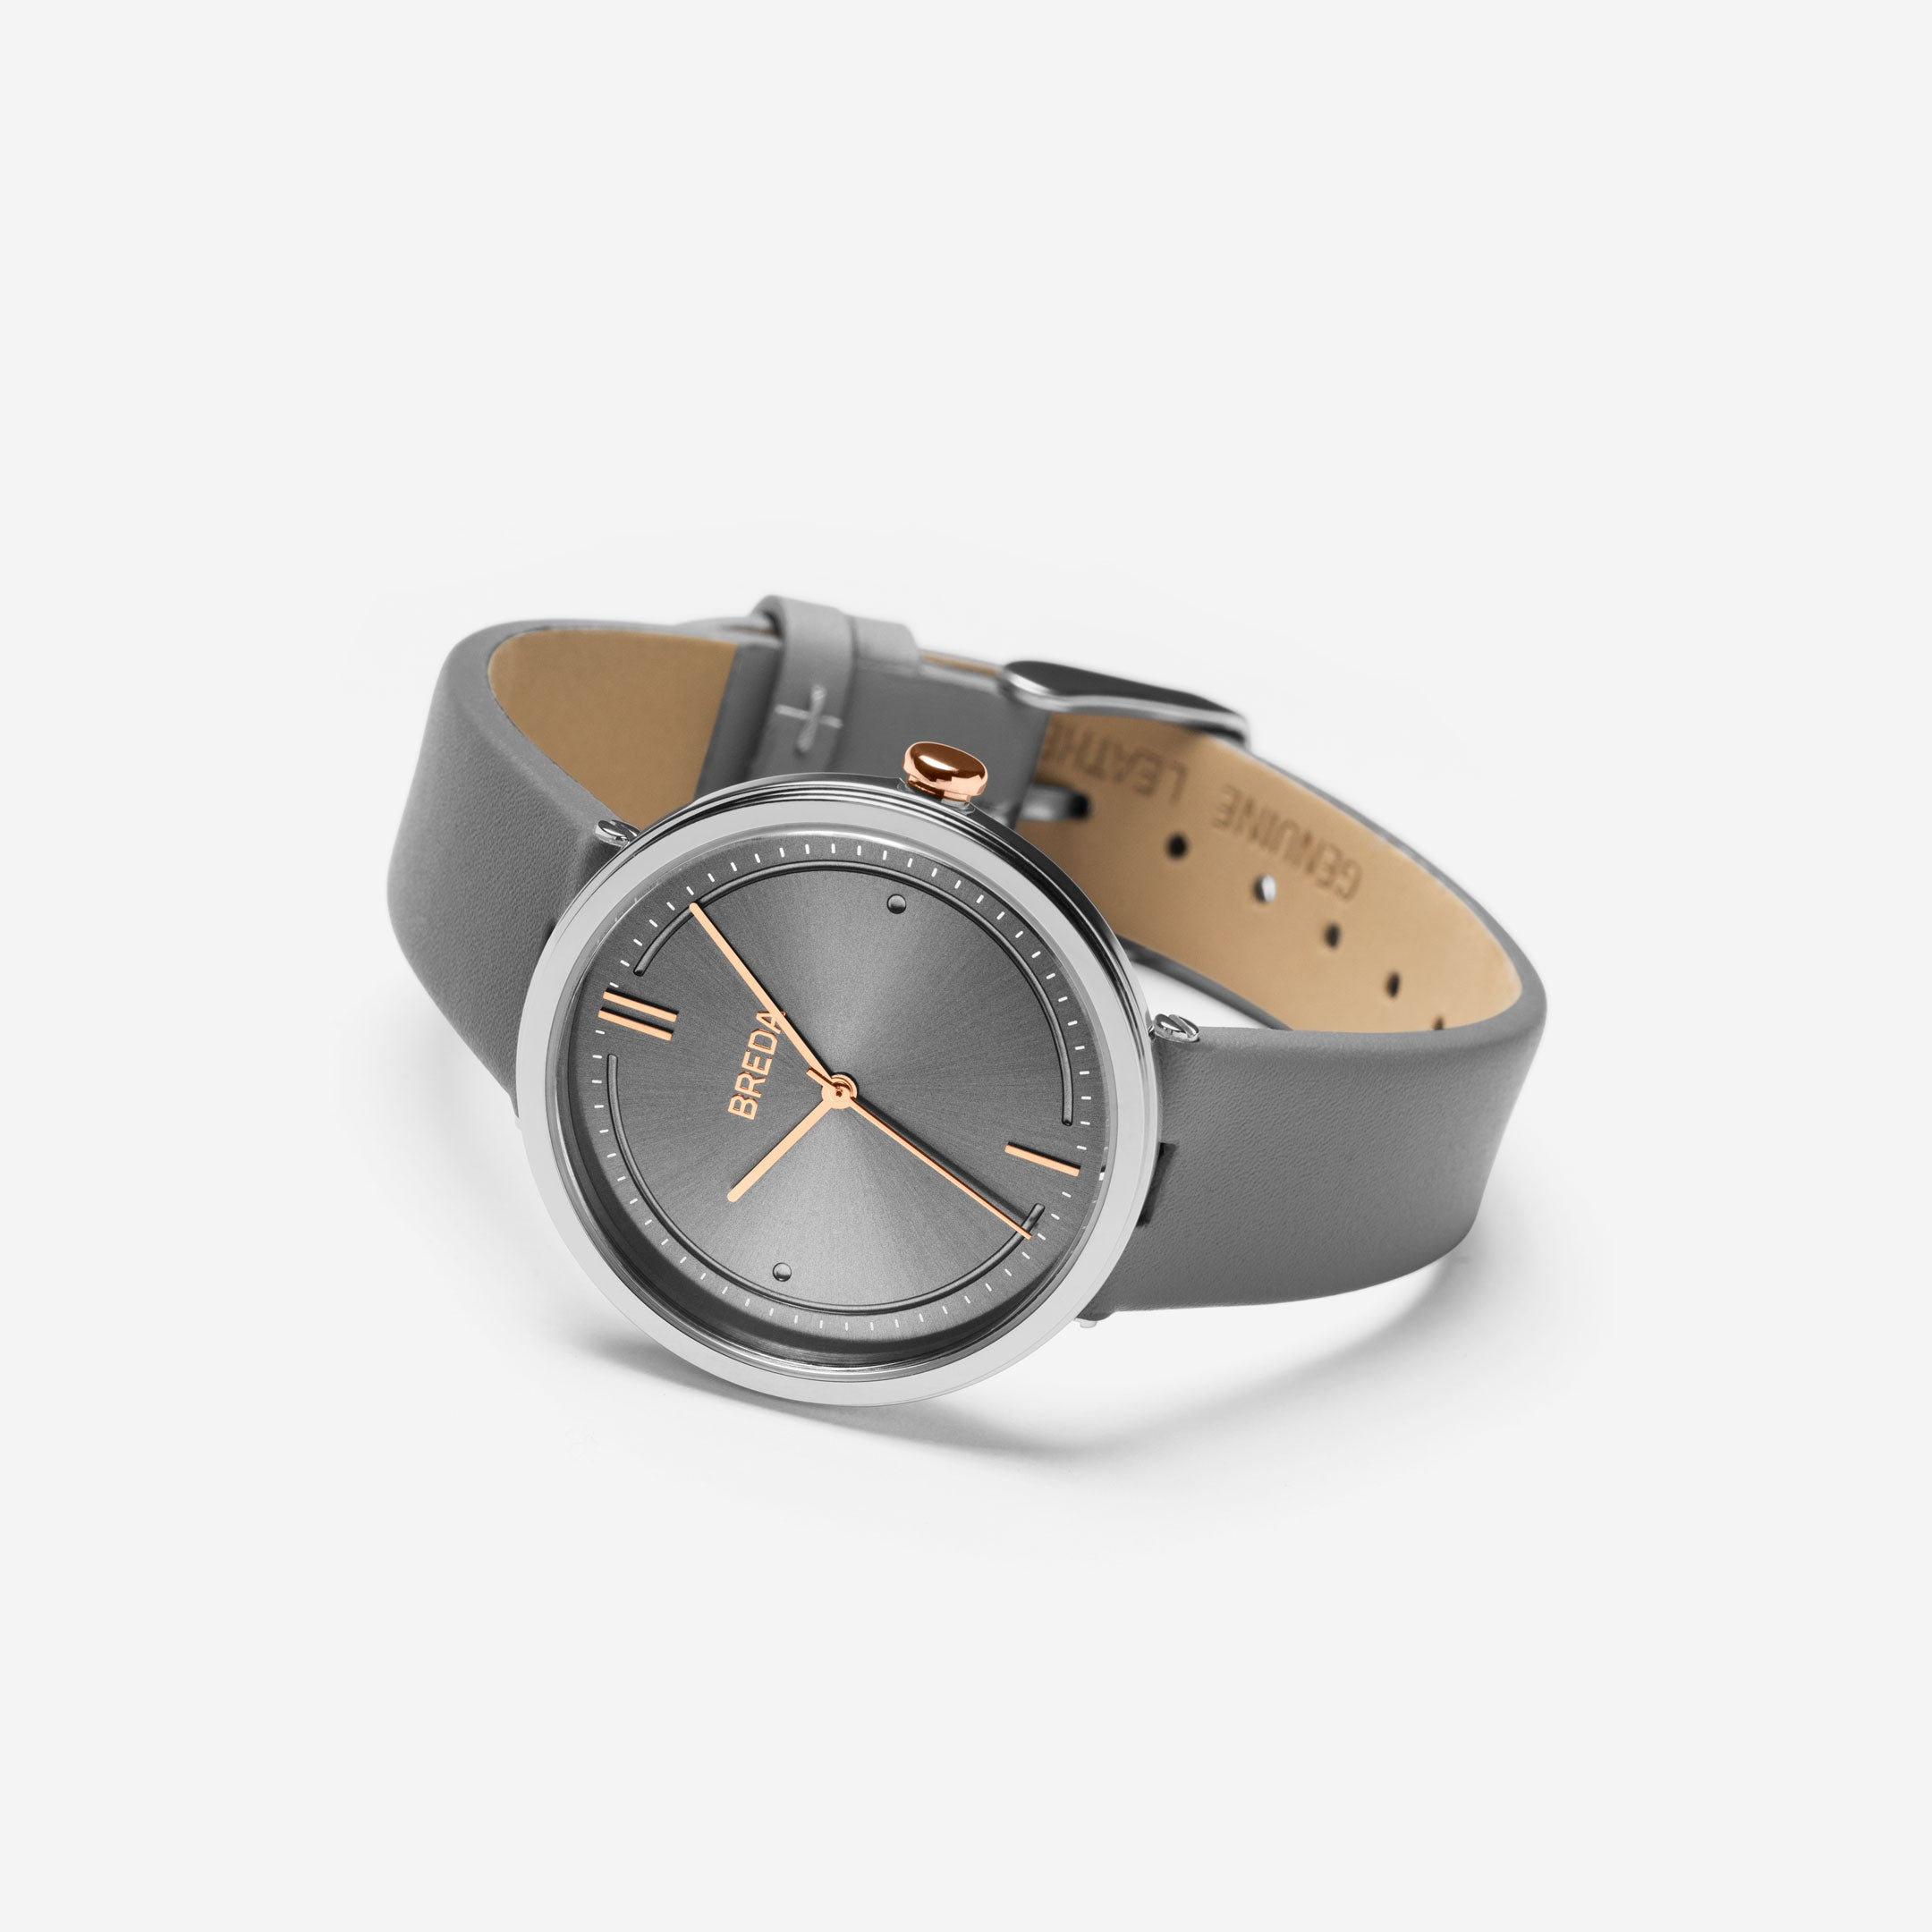 //cdn.shopify.com/s/files/1/0879/6650/products/breda-agnes-1733c-silver-rosegold-gray-leather-watch-angle_1024x1024.jpg?v=1522789048